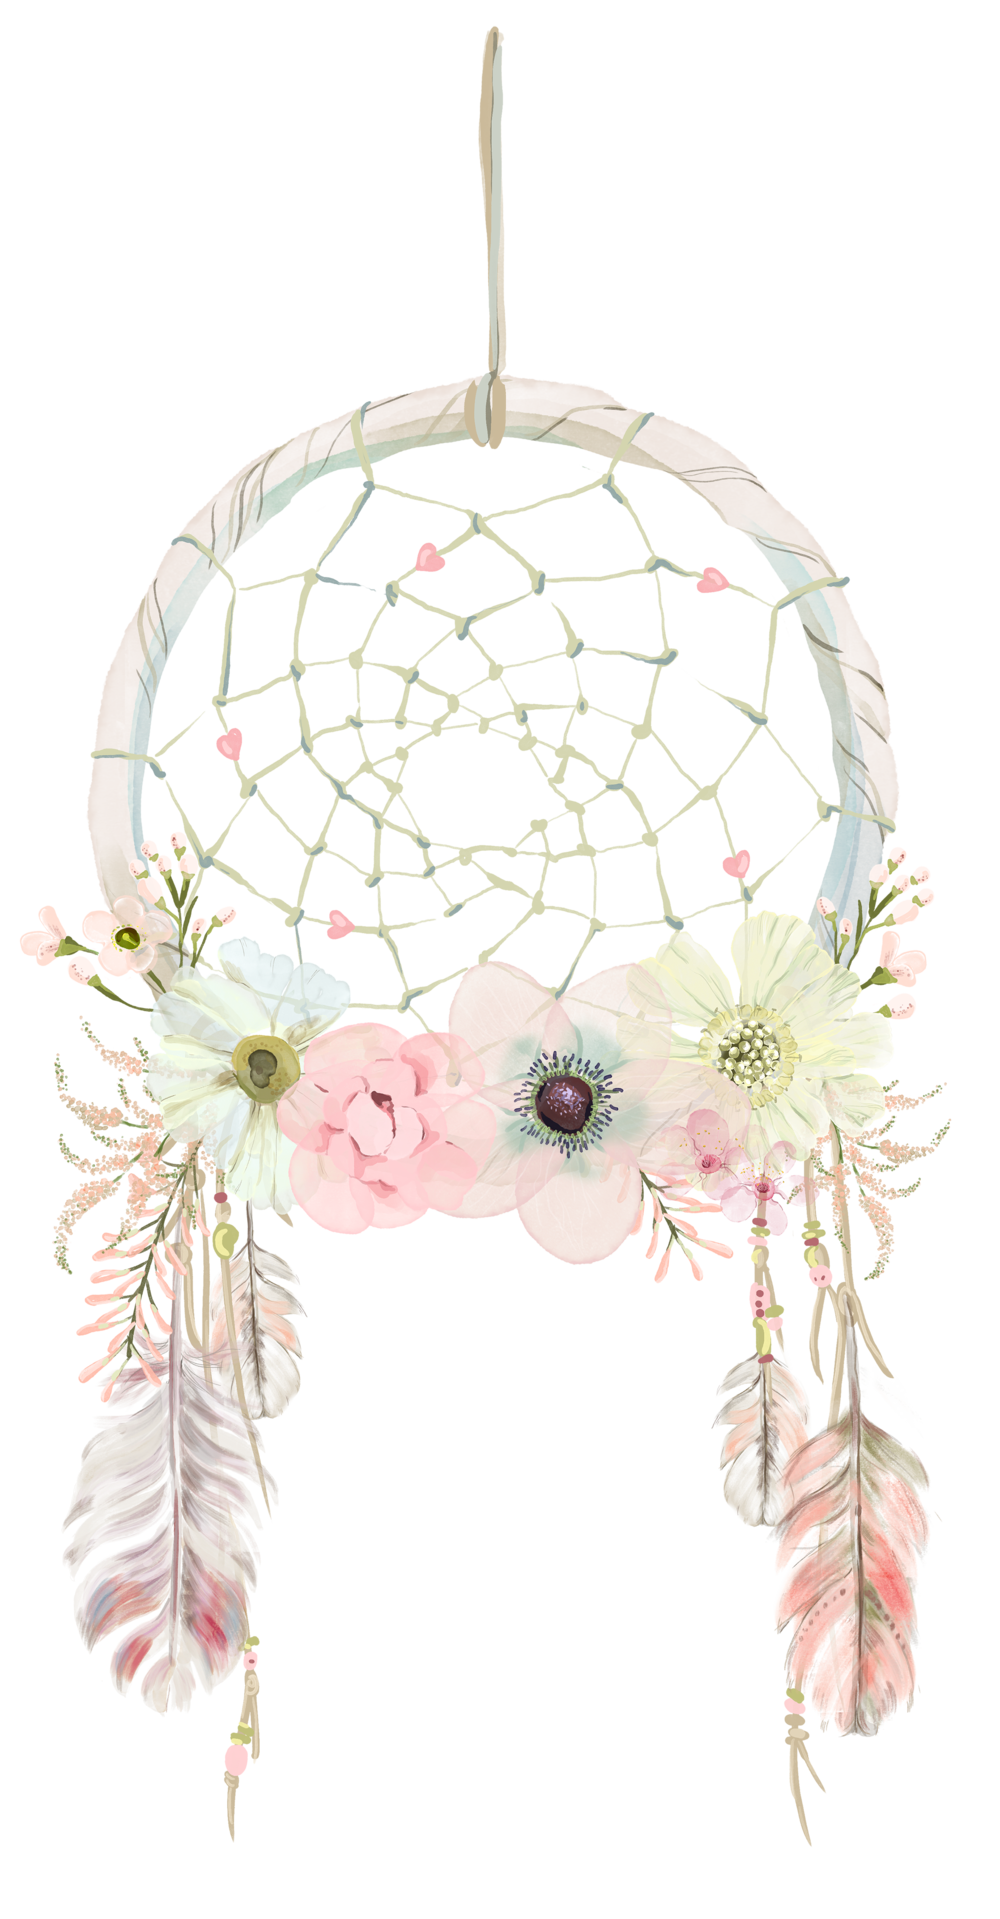 Dreamcatcher transparent boho. Dream catcher clipart saferbrowser